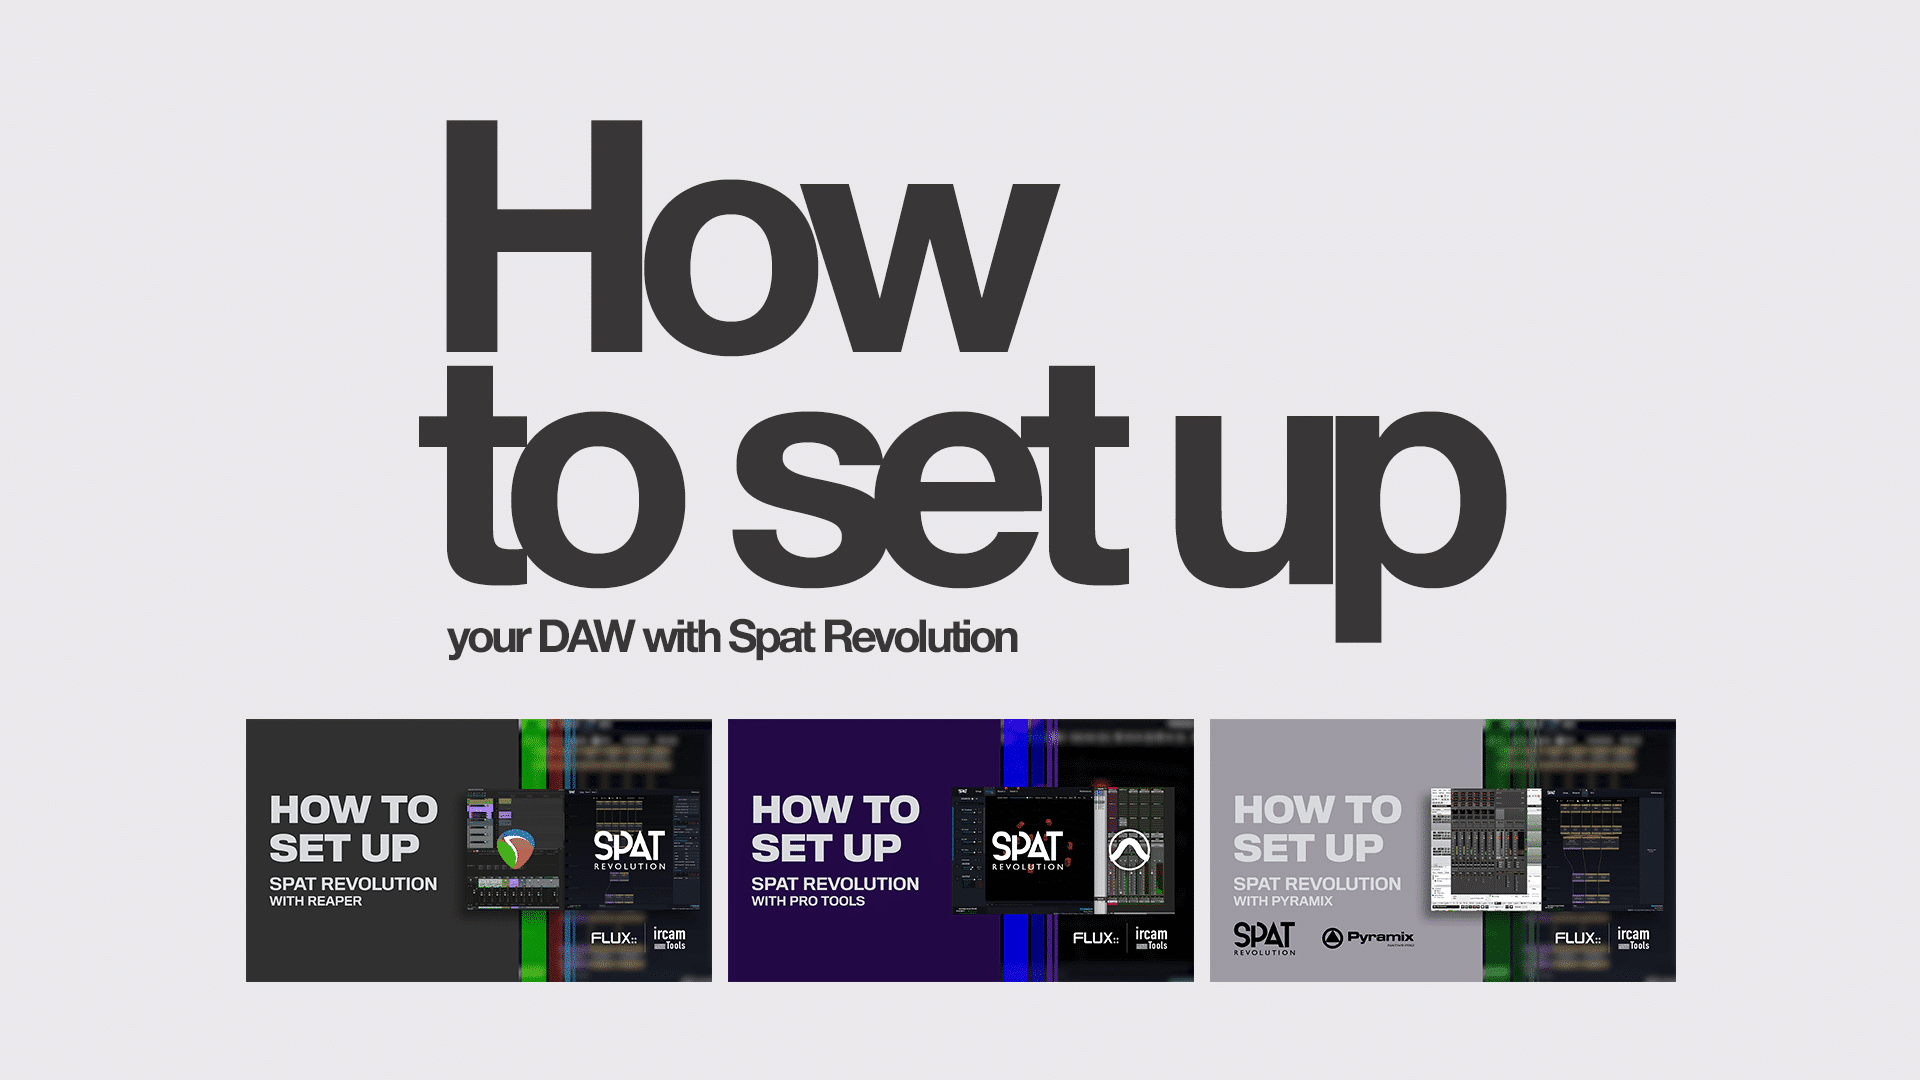 How to set up your DAW with Spat Revolution